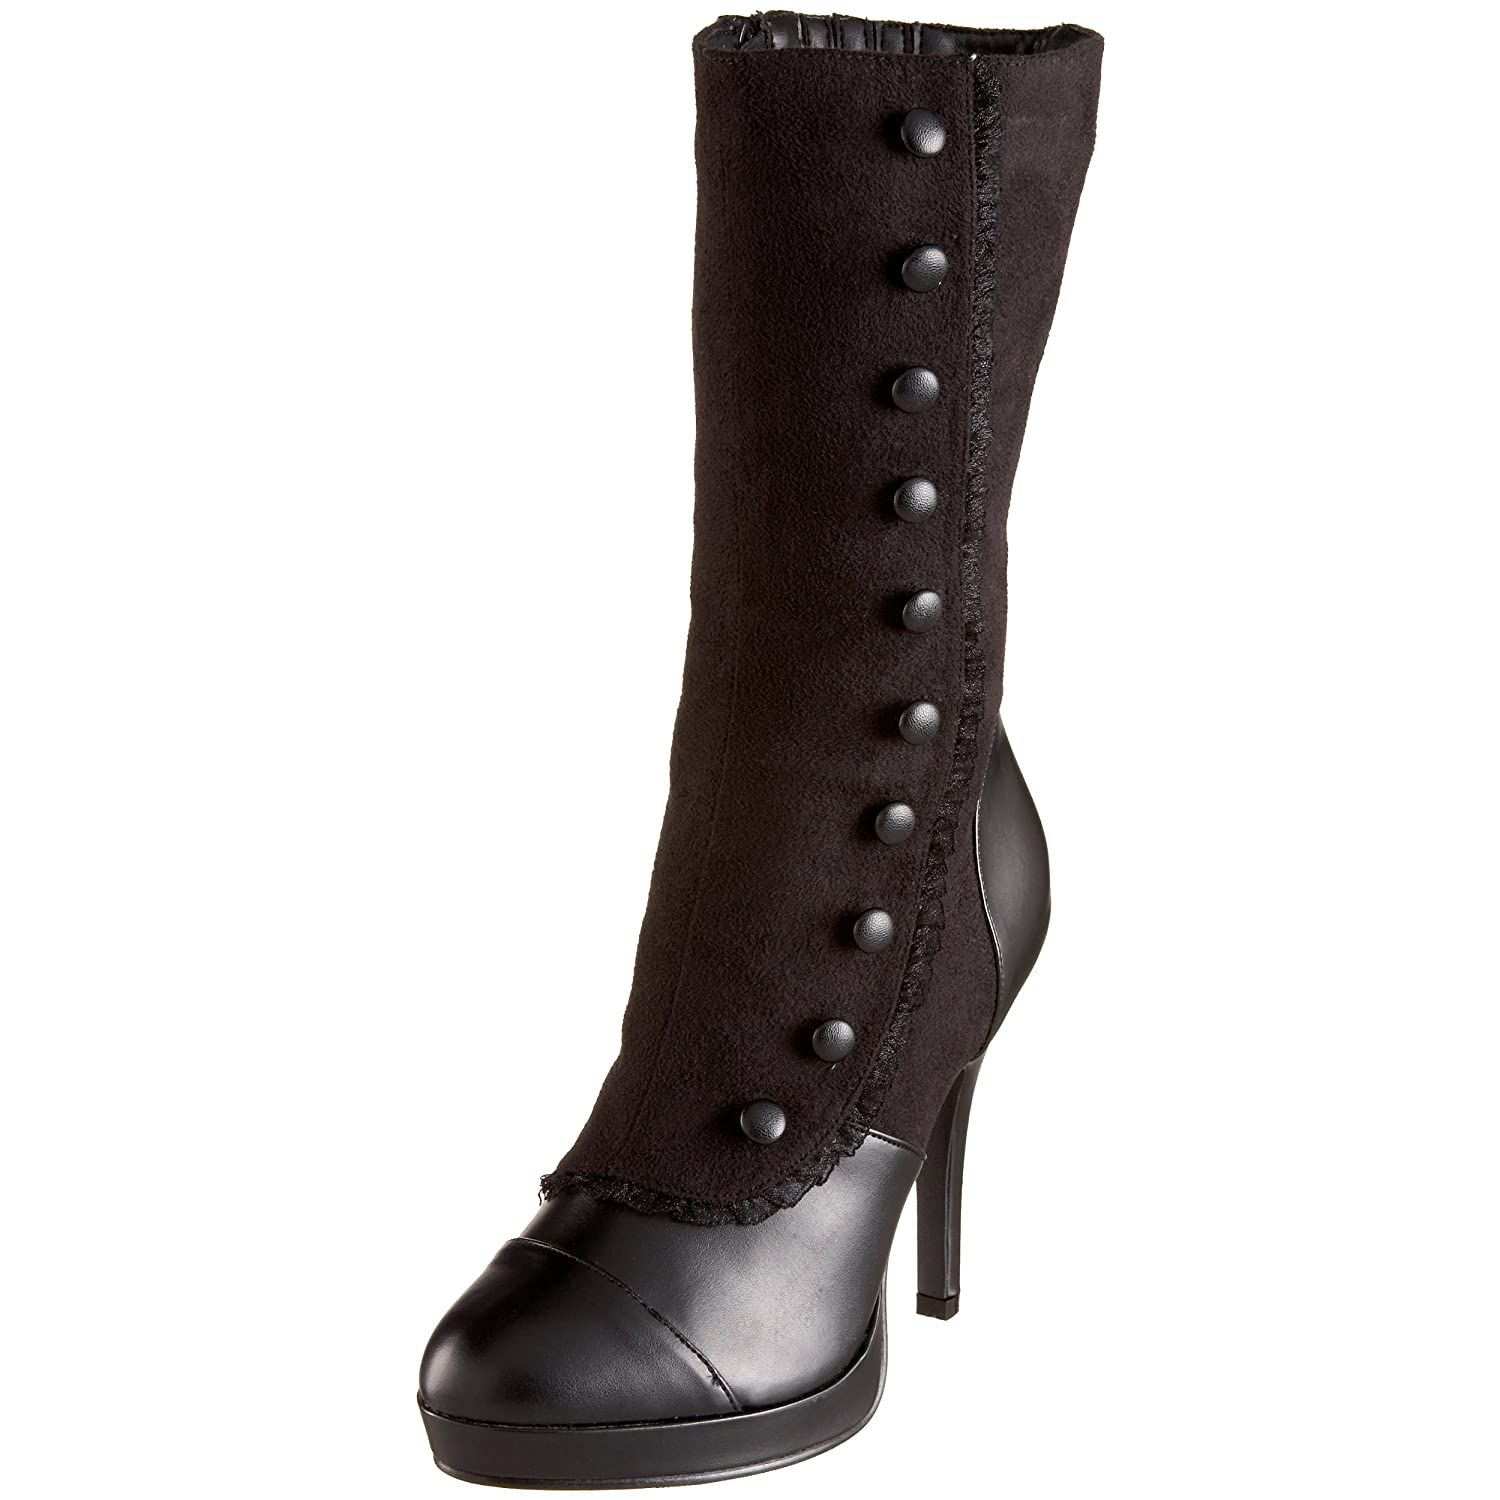 Vintage Boots- Buy Winter Retro Boots  Womens Splendor-130 Mid-Calf Boot $45.96 AT vintagedancer.com